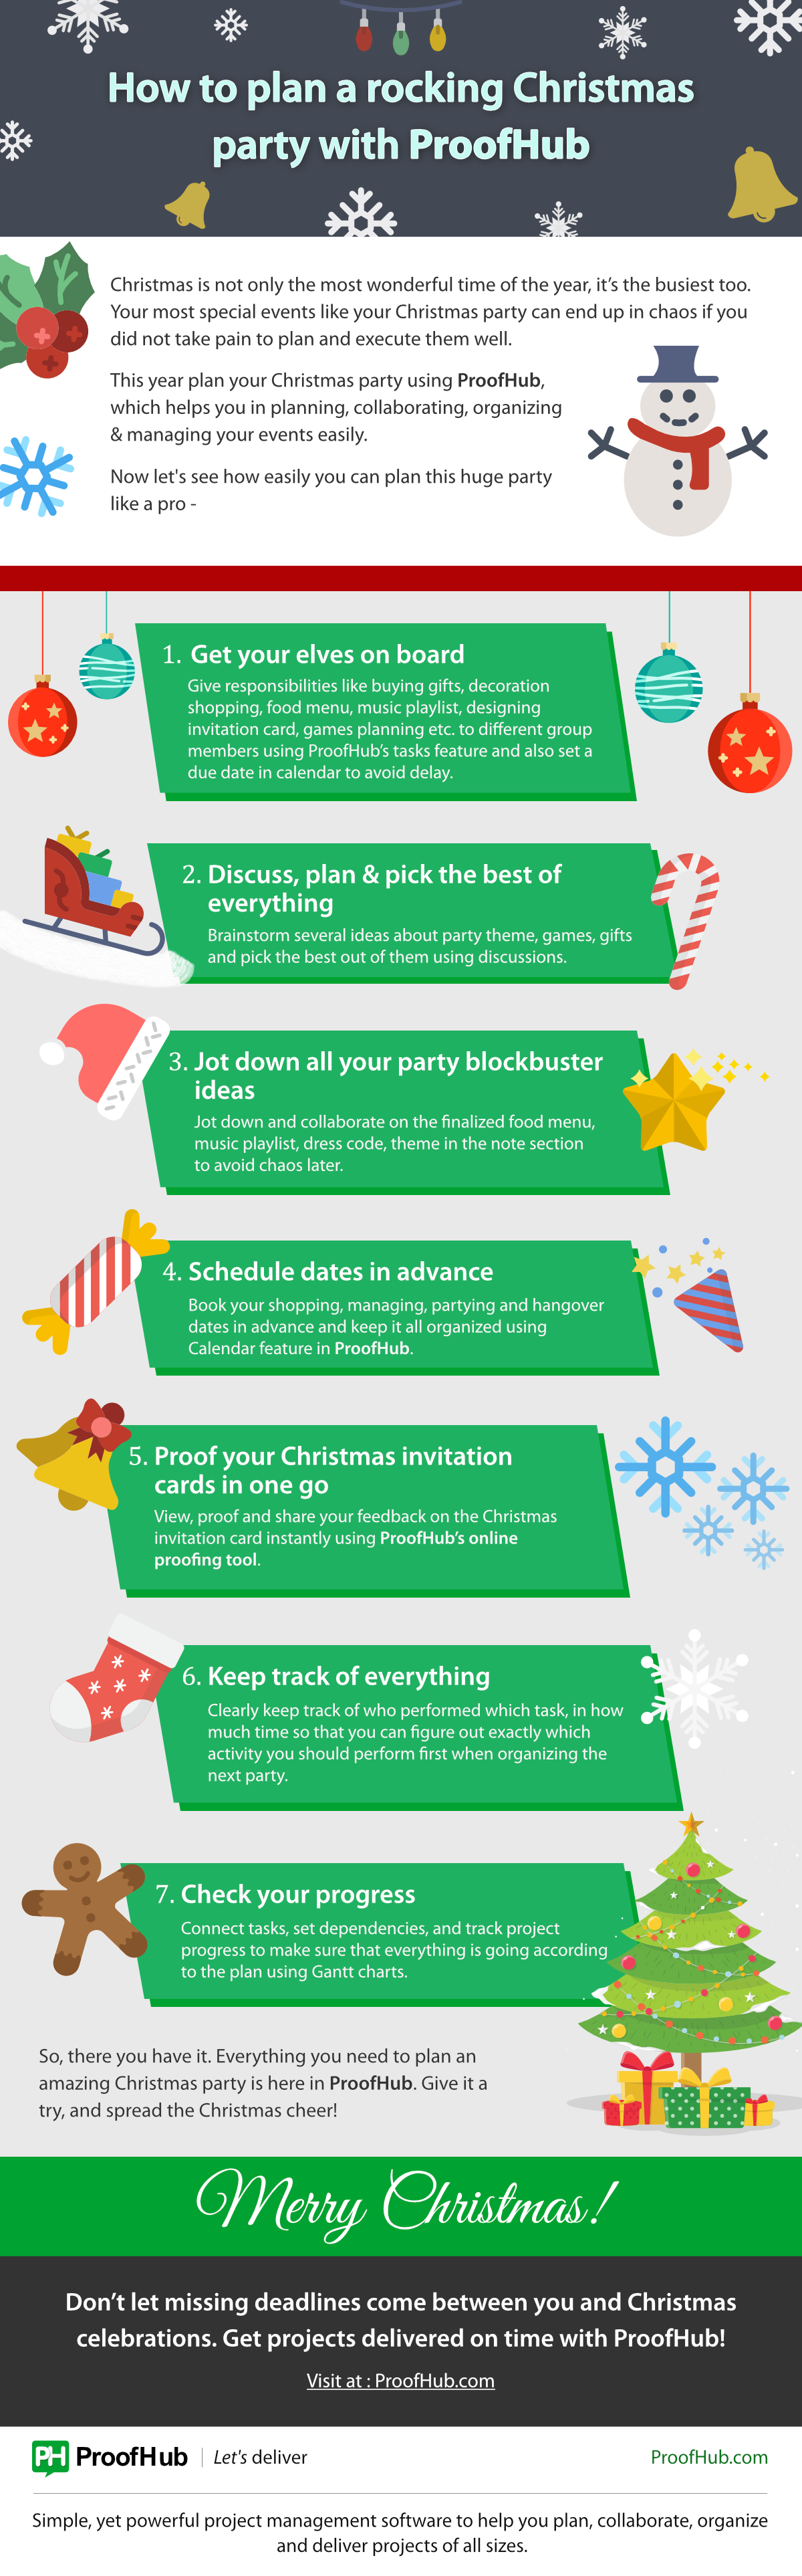 also read how santa claus manage his christmas with proofhub here a day in the life of santa claus during christmas with proofhub